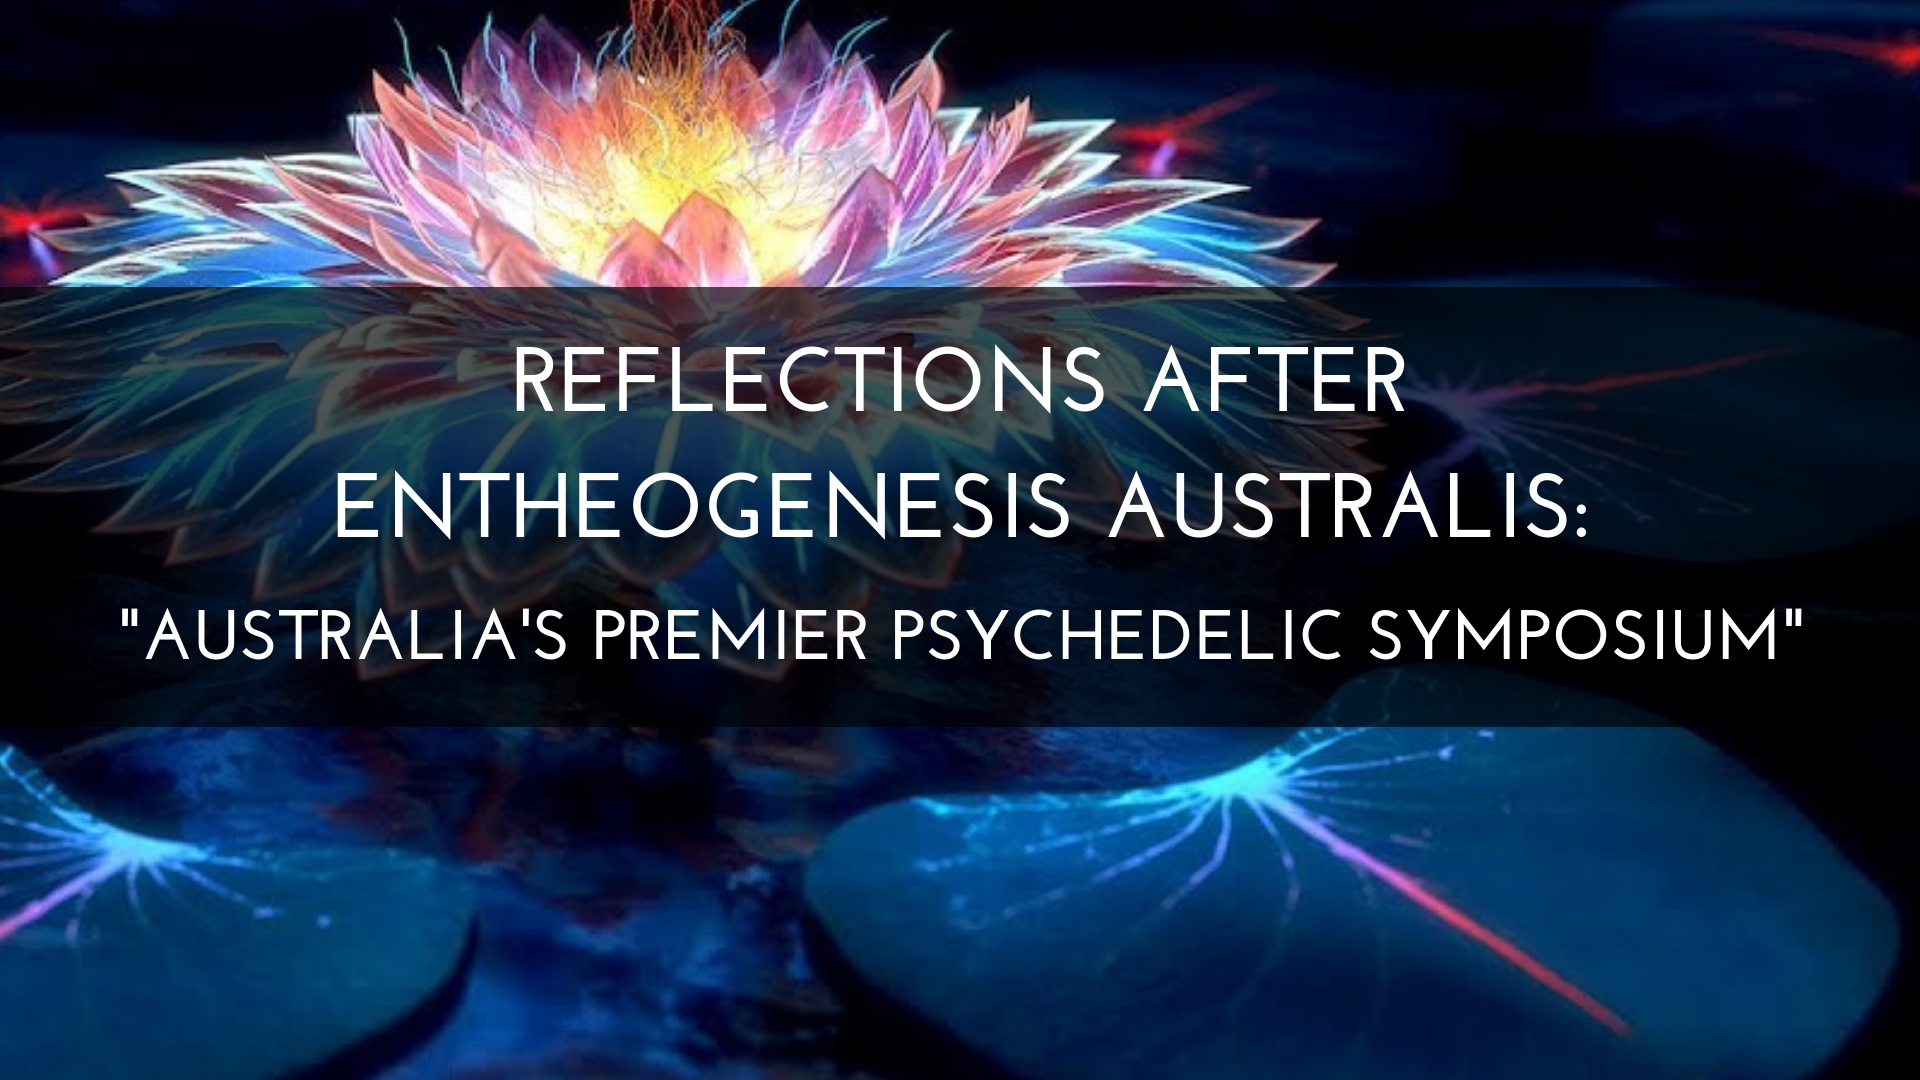 Reflections After Entheogenesis Australis